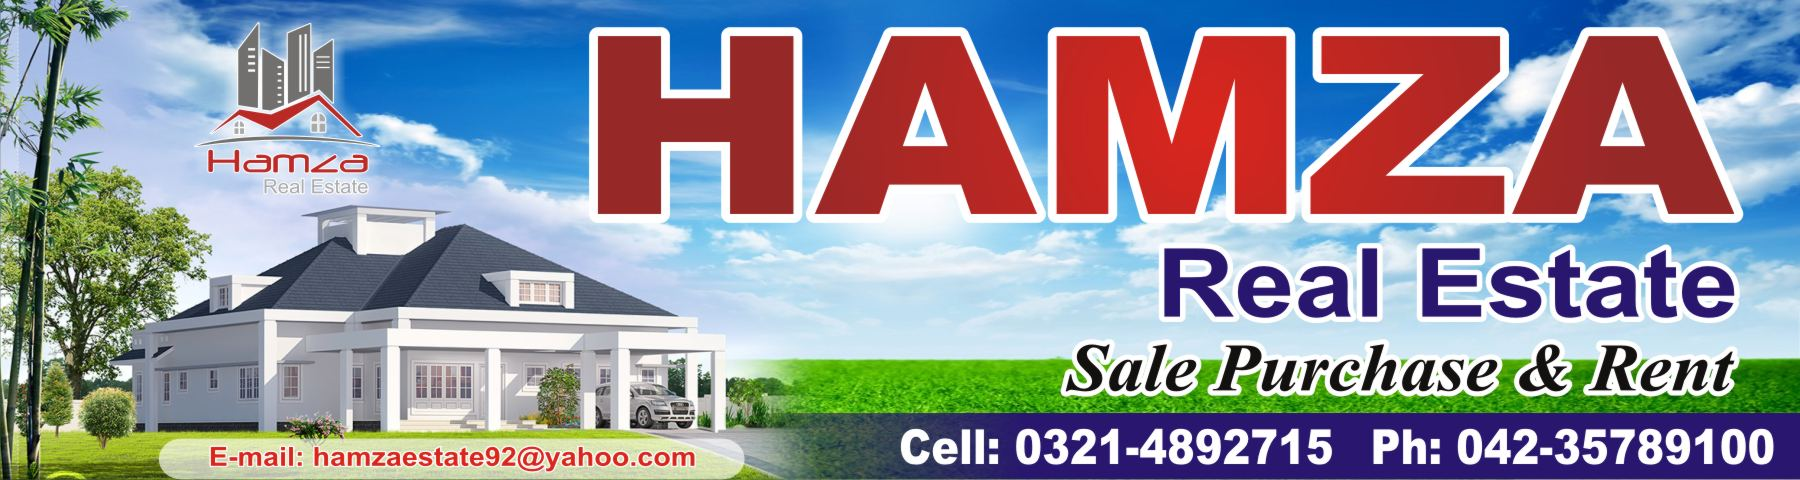 Hamza Real Estate 123 Upper Mall international hotel Lahore | Lahore